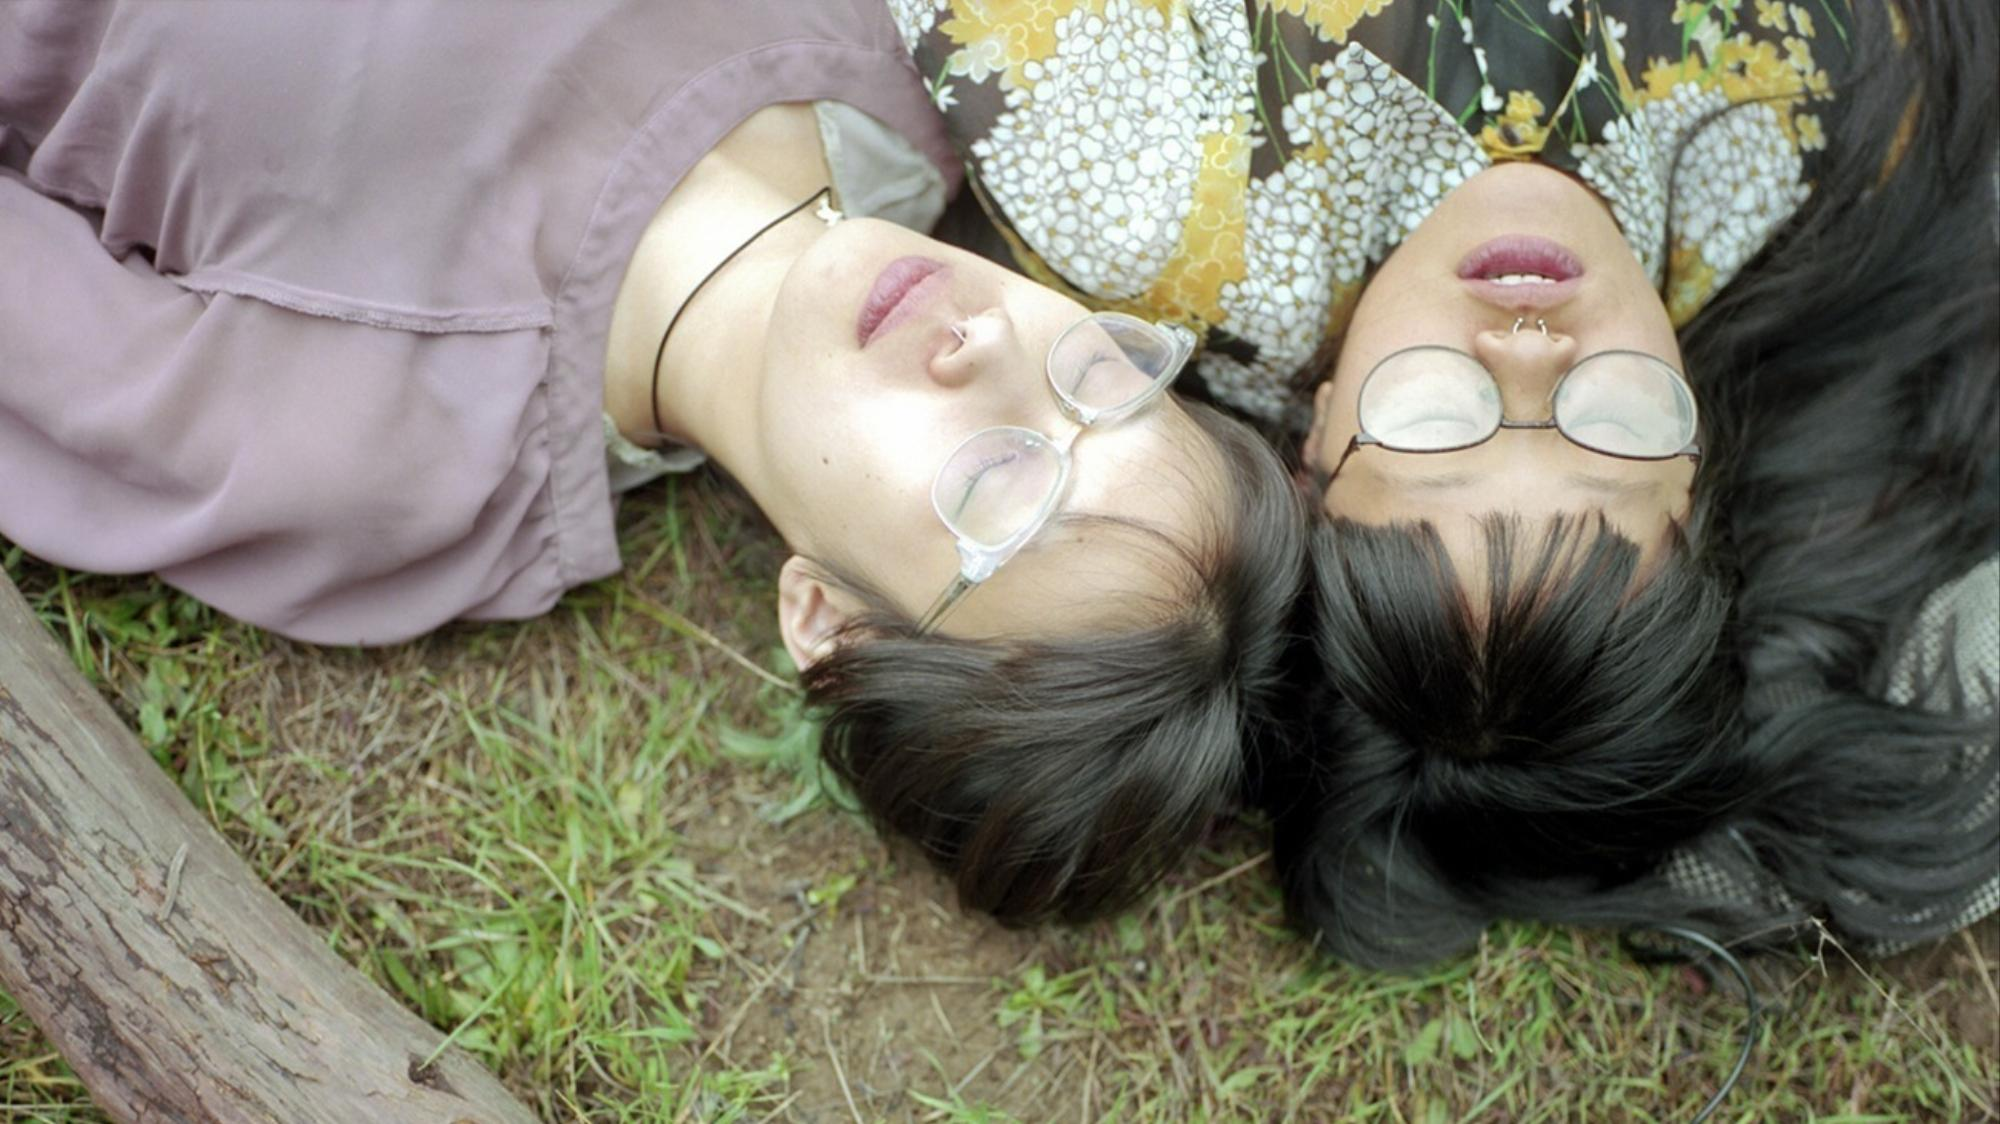 photographer vivian fu will change the way you see asian women